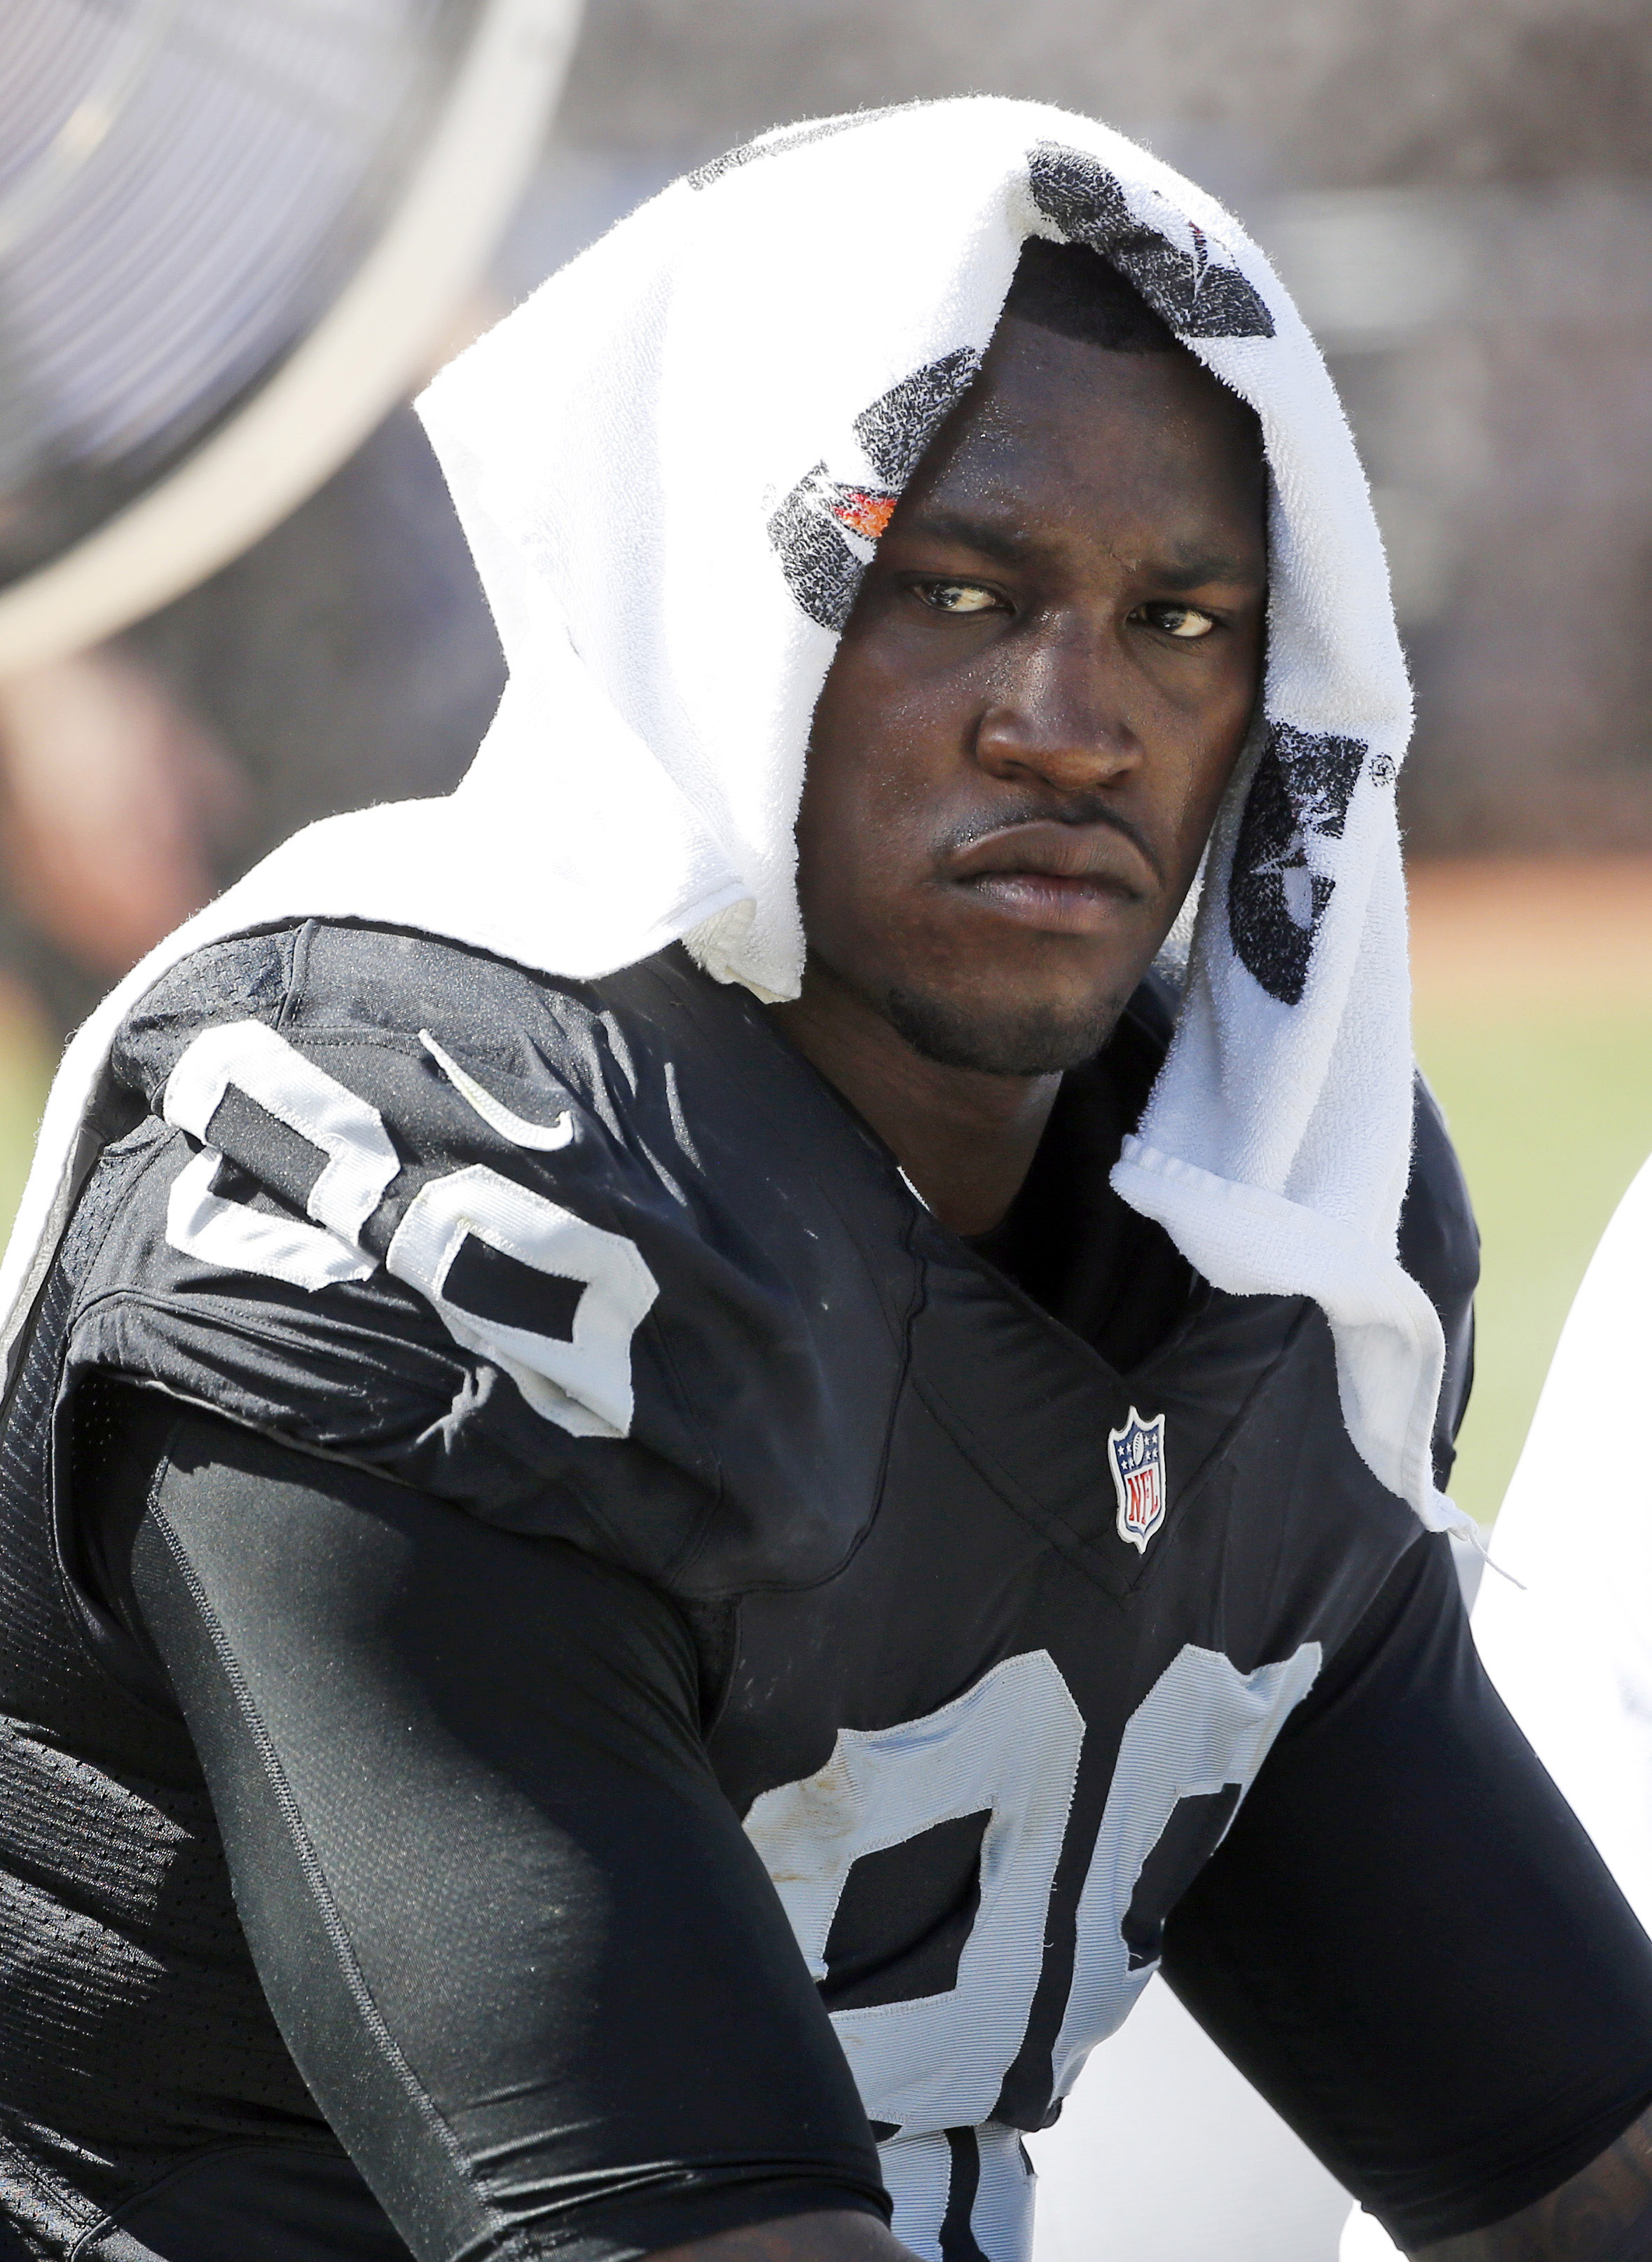 FILE - In this Sunday, Sept. 20, 2015 file photo, Oakland Raiders defensive end Aldon Smith (99) cools off during an NFL football game against the Baltimore Ravens in Oakland, Calif. Oakland Raiders linebacker Aldon Smith was suspended Tuesday, Nov. 17, 2